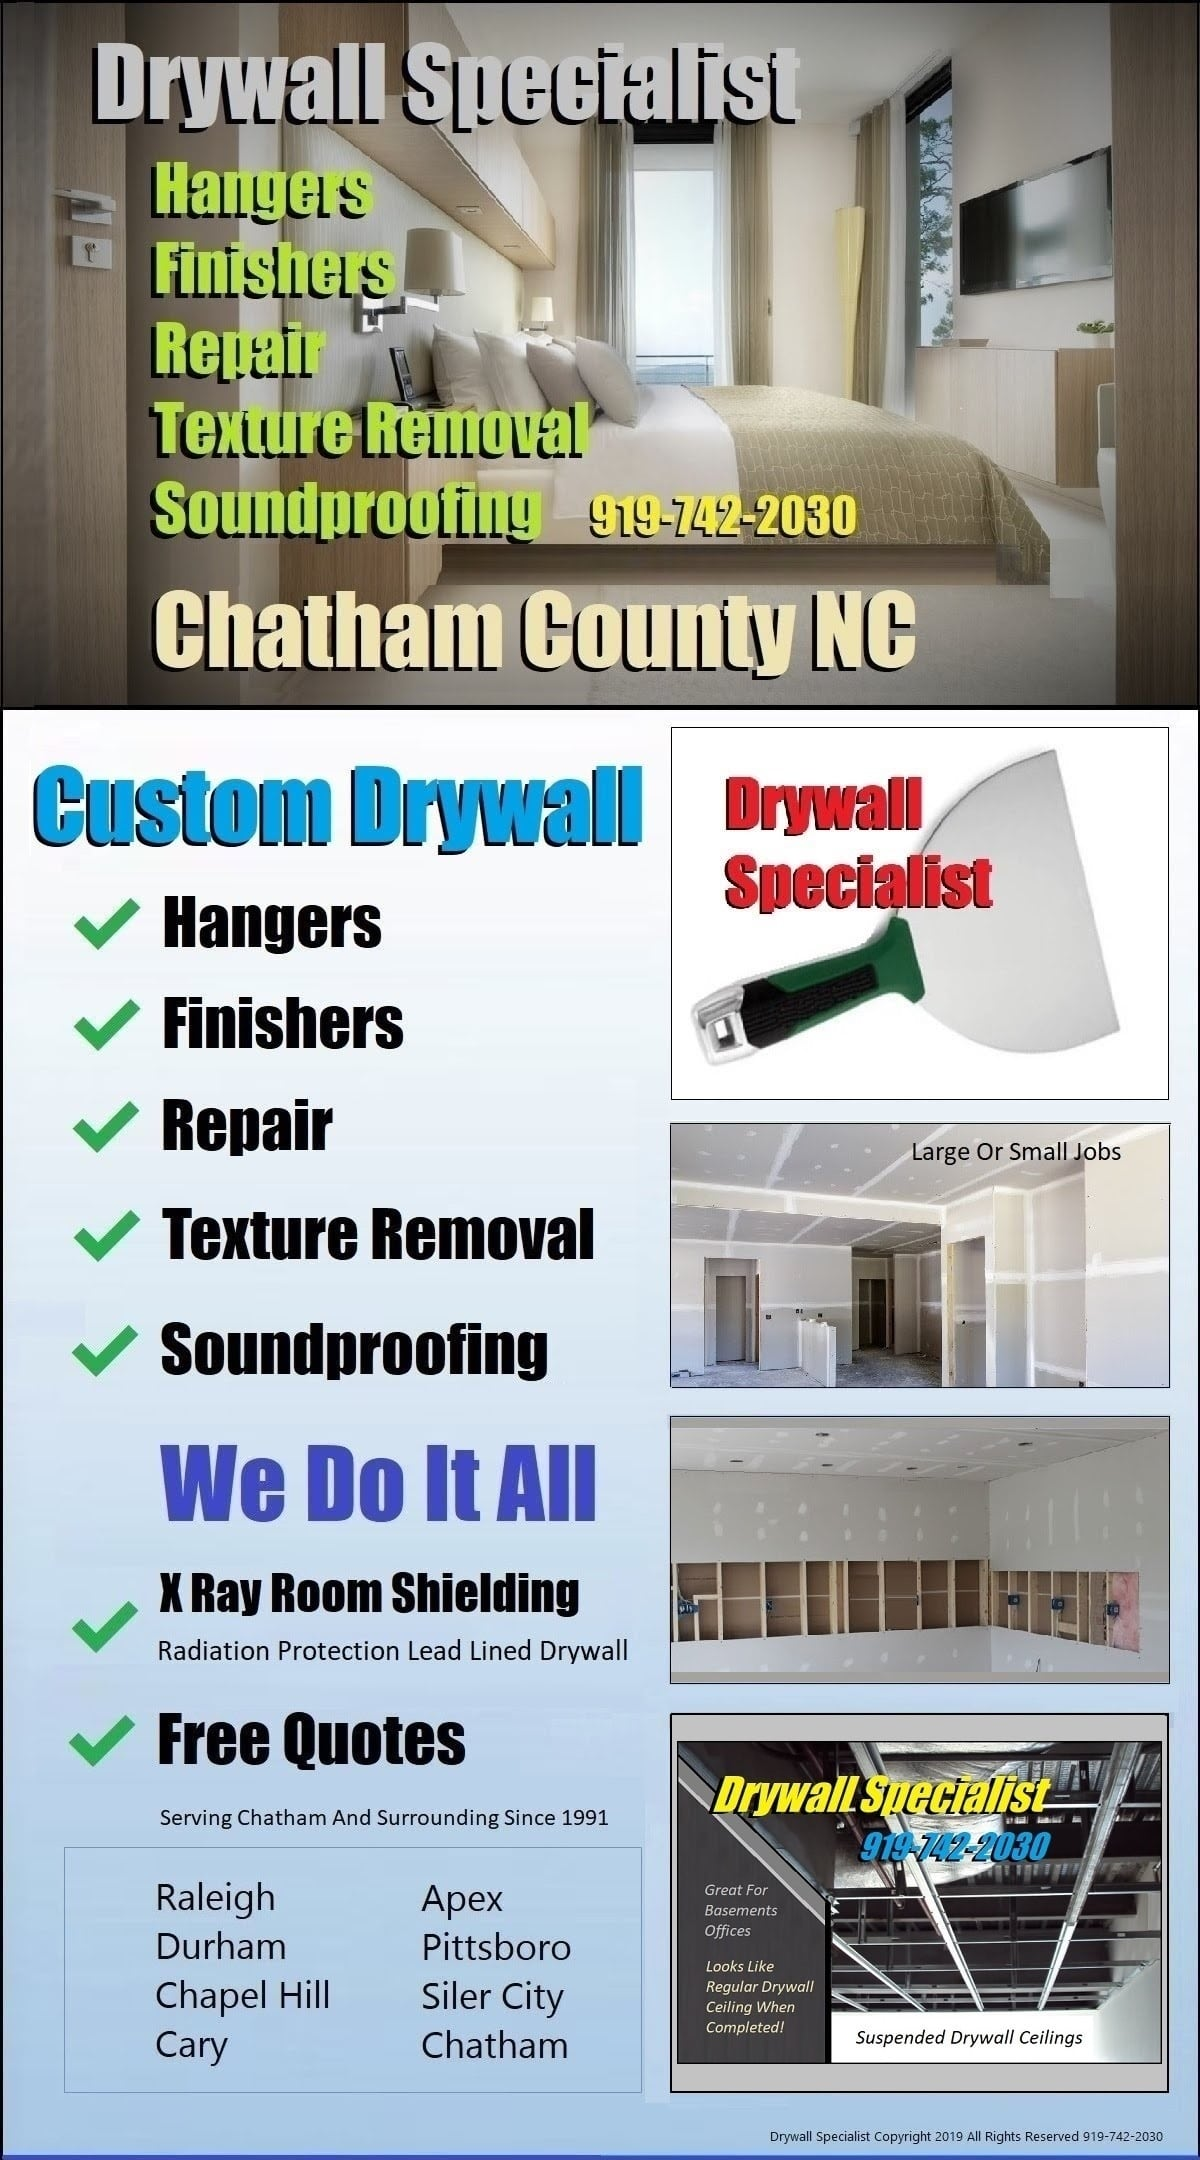 Nextdoor #DrywallTaping Company/Contractor Mudding Finishing Raleigh RTP